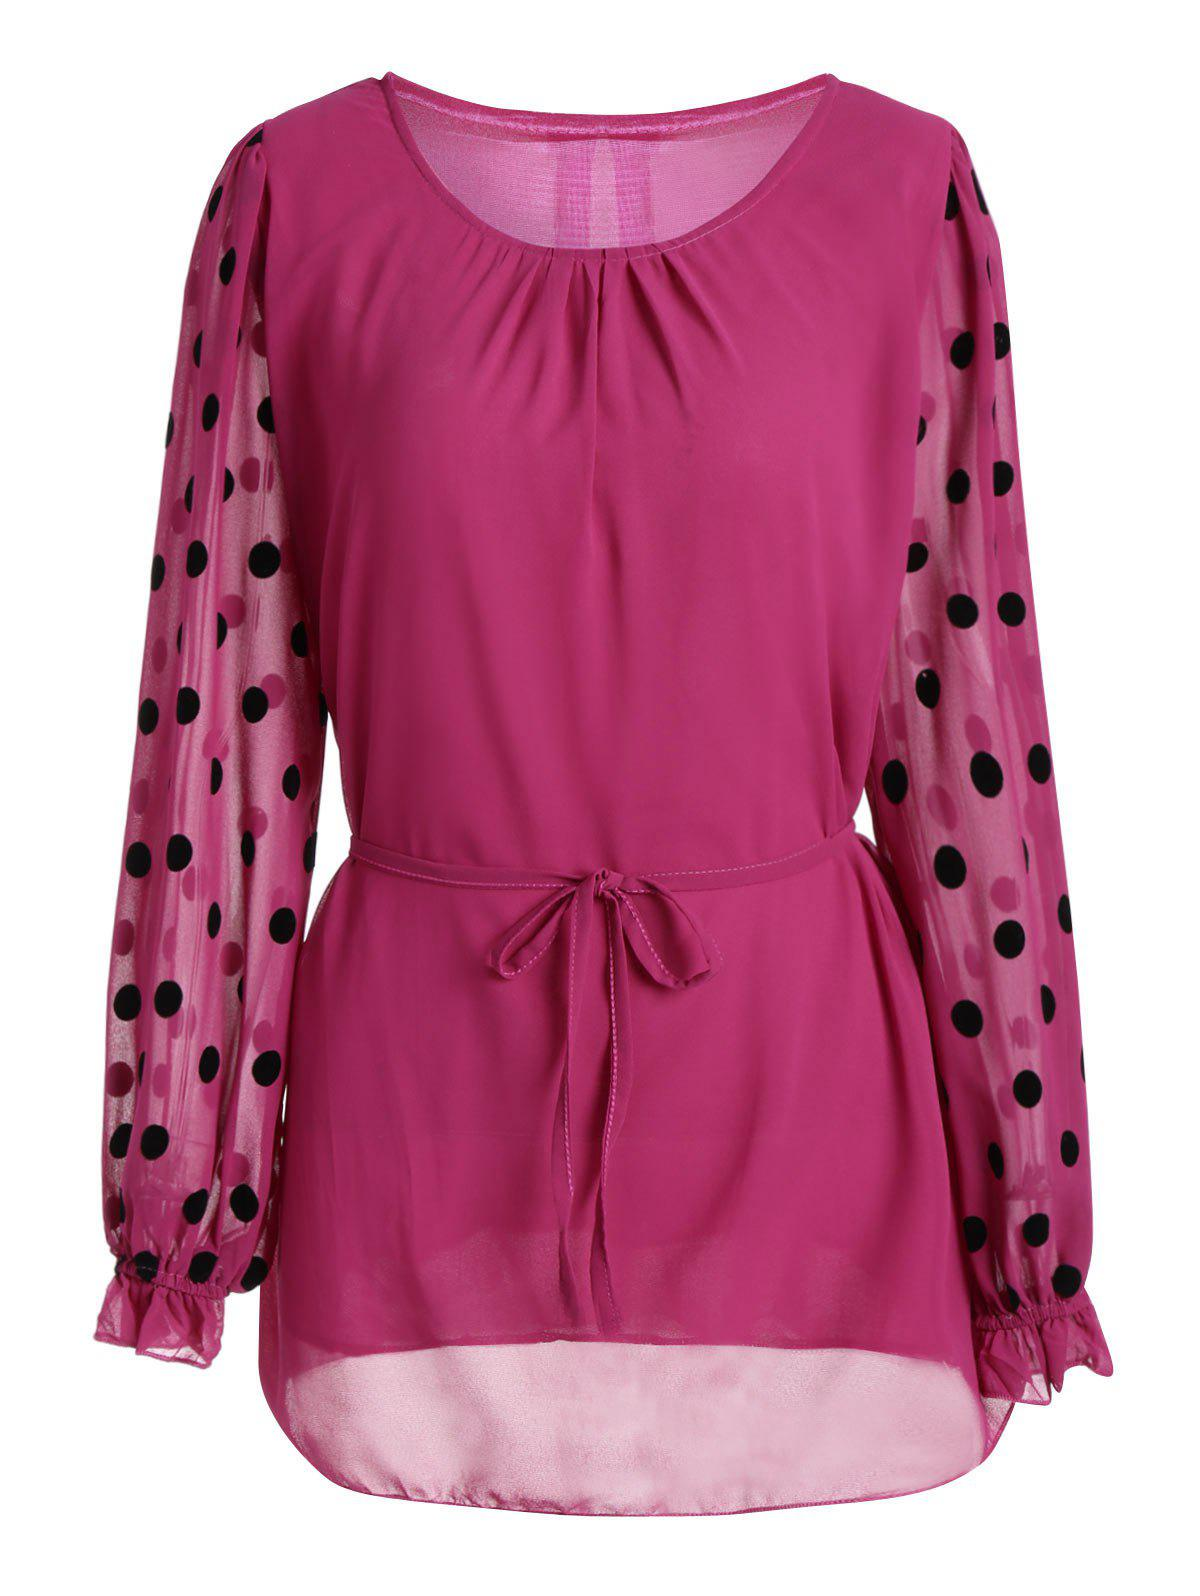 Polka Dot Plus Size Long Sleeve Chiffon Top - ROSE RED 3XL